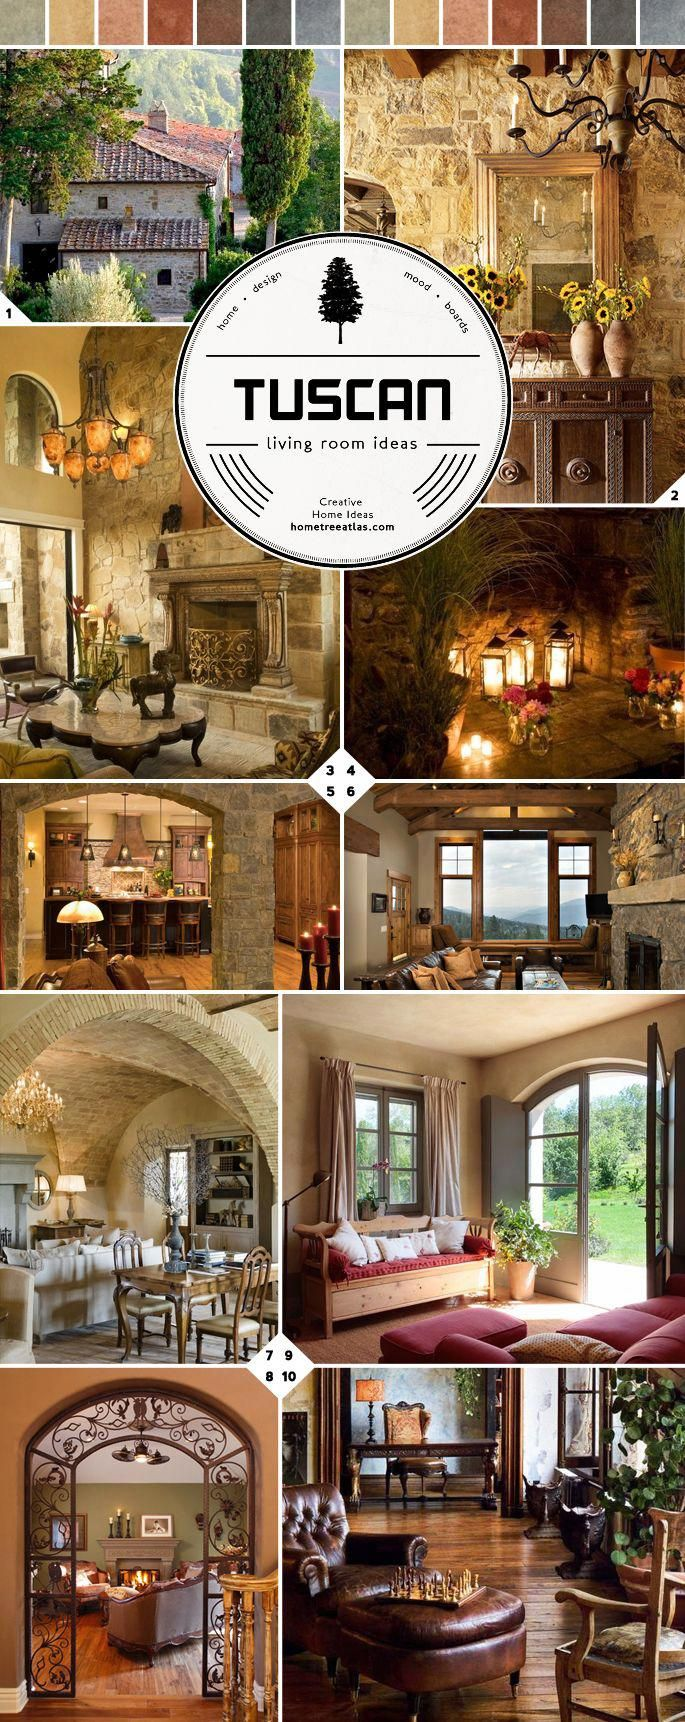 From Italy Tuscan Living Room Ideas Tuscandesignfamilyrooms Tuscan Living Rooms Tuscan House Tuscan Decorating #tuscan #decor #living #room